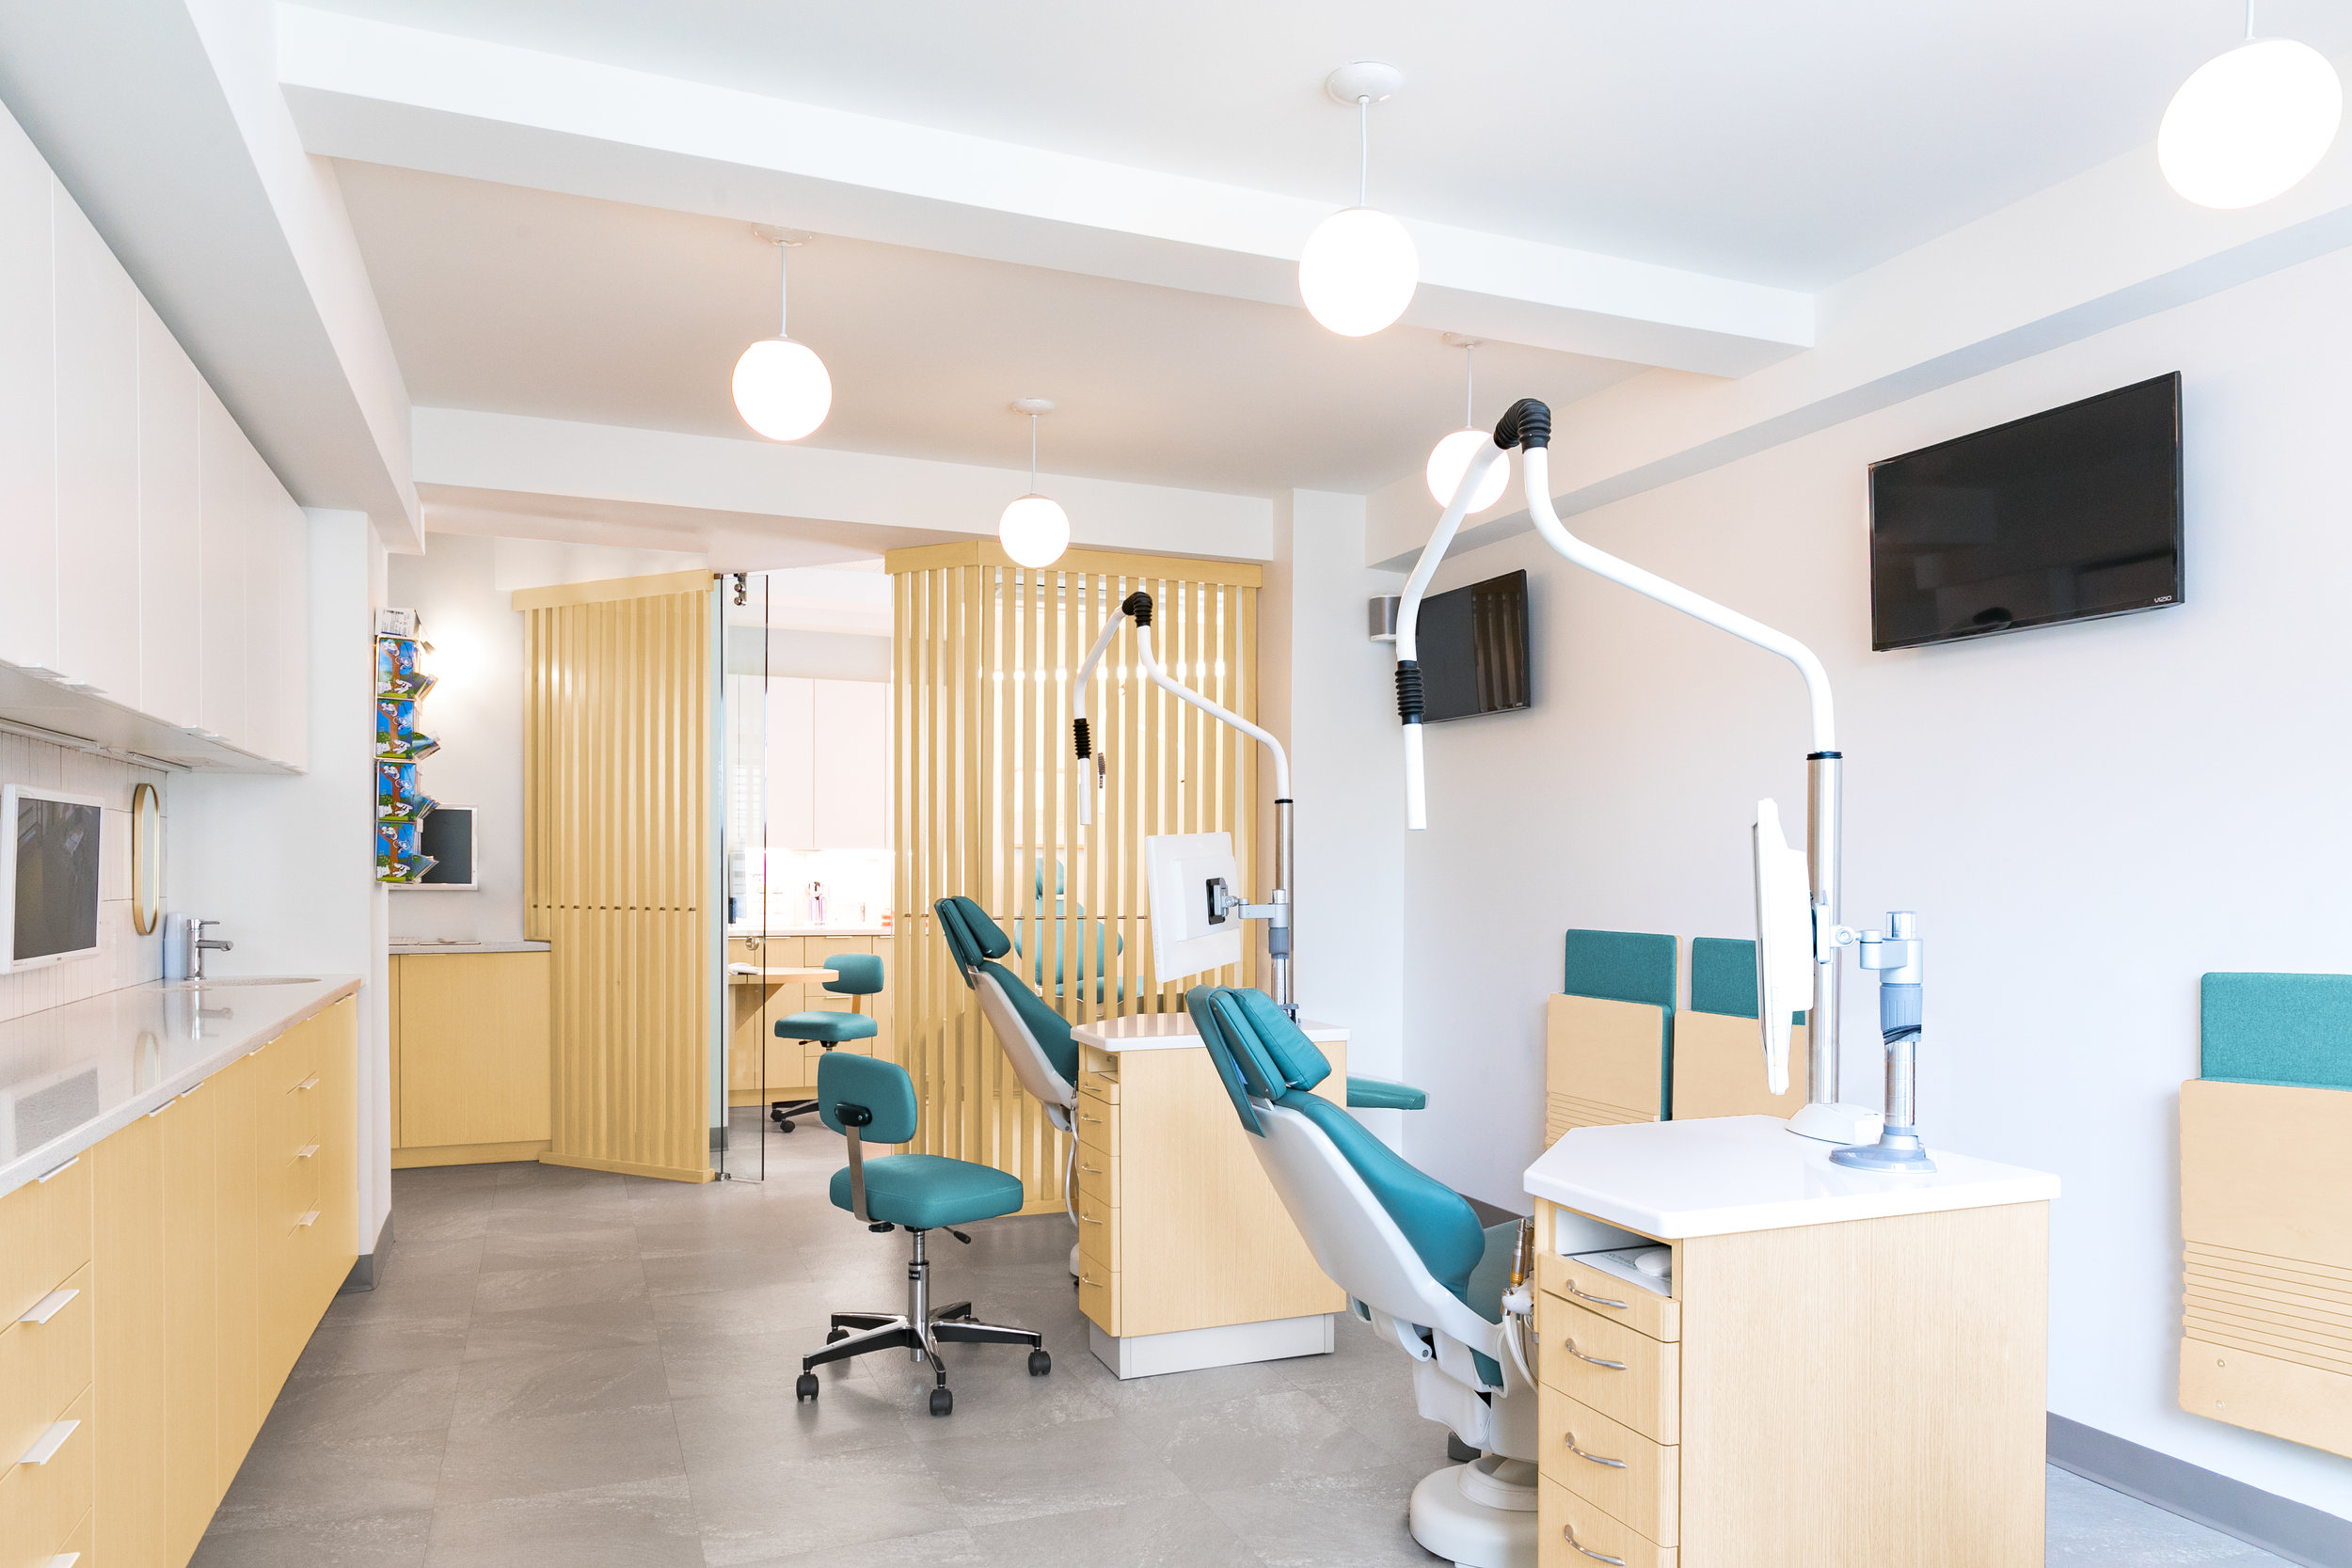 Royal Orthodontics